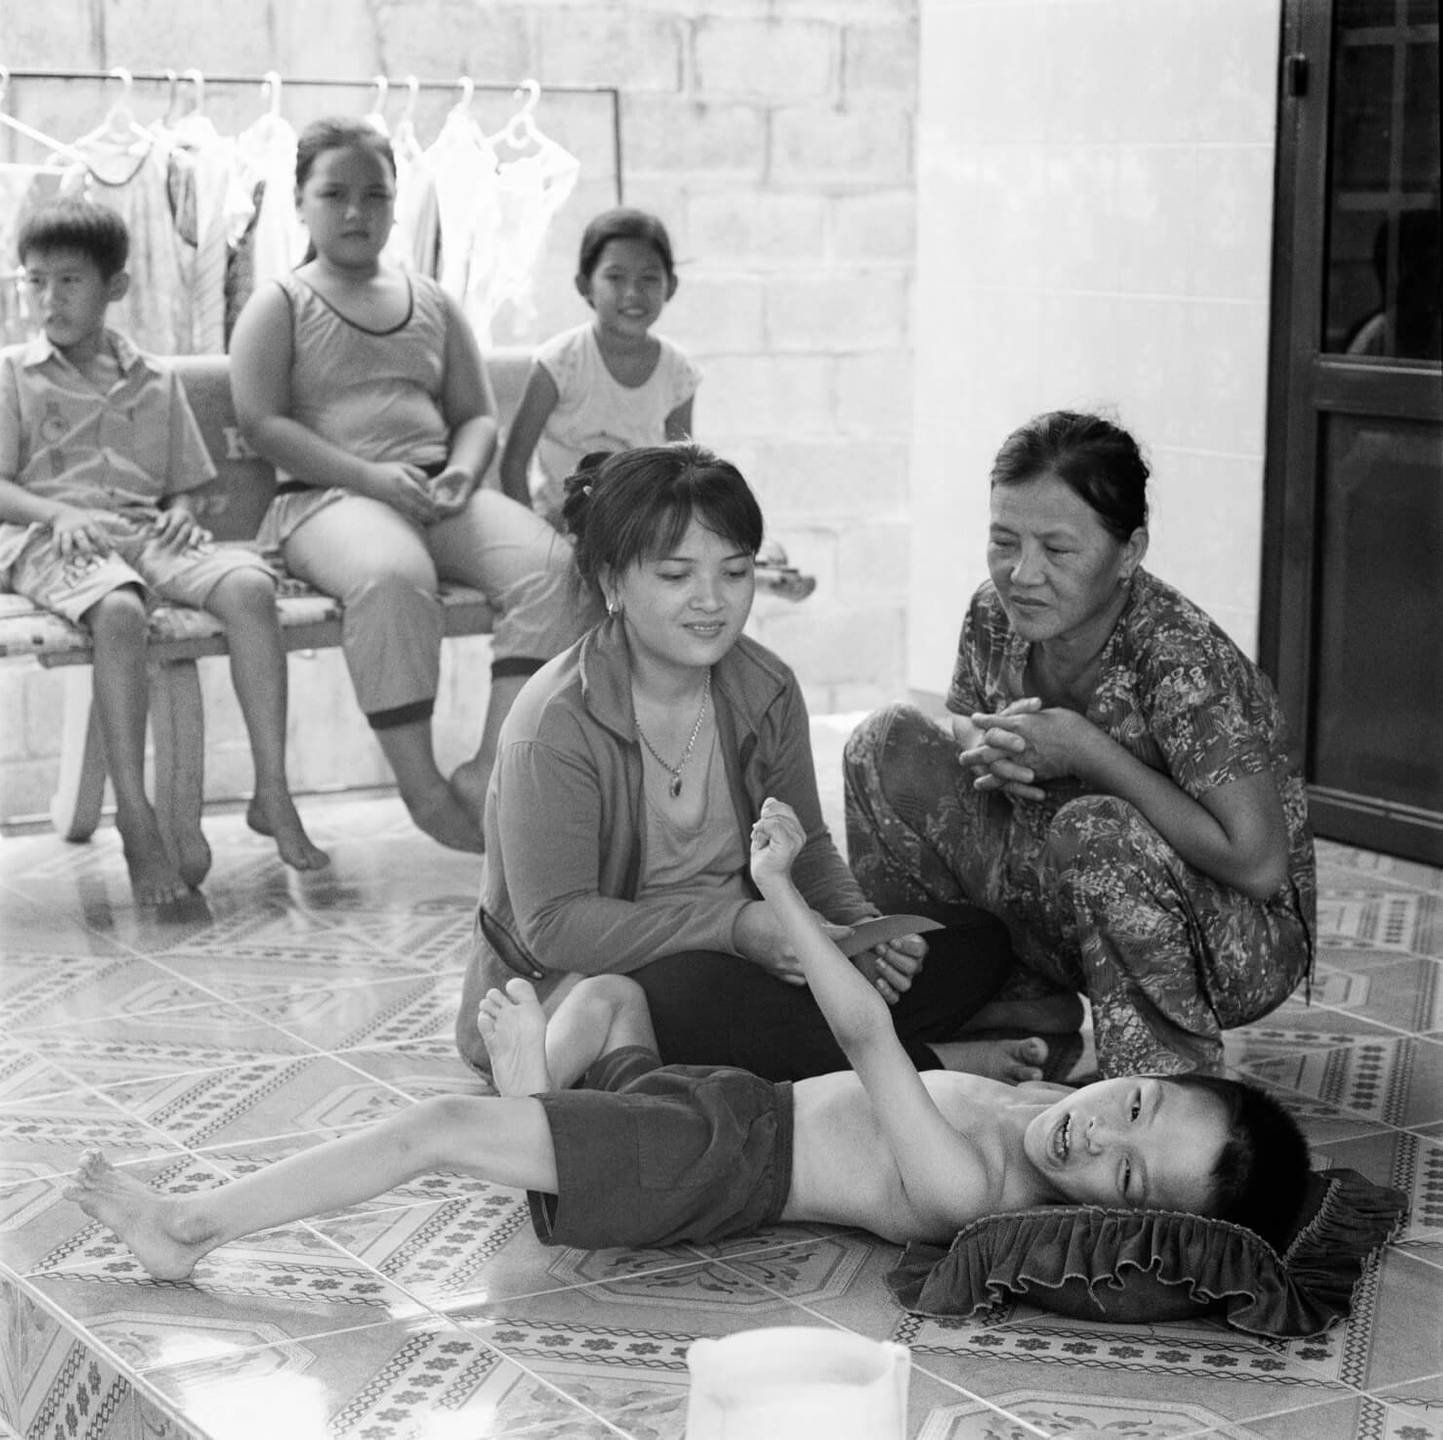 A deformed Asian child lays on the ground while two adults tend to him. Children sit on a bench in the background.